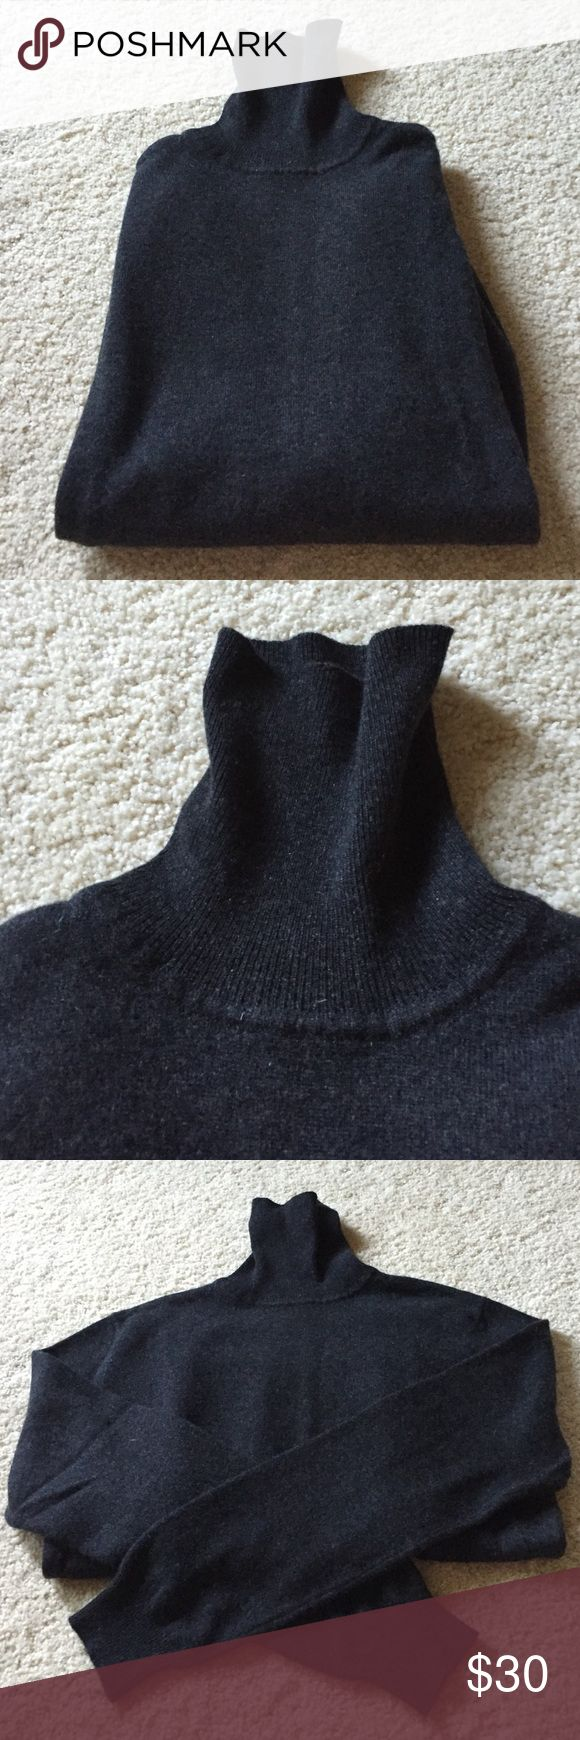 "Country Shop Cashmere Sweater Excellent condition. 100% cashmere. Thick and soft. Long sleeves, turtleneck. Dark gray. Banded sleeves and bottom edge. Not from a smoke free house. Dry clean only. 18.5"" armpit to armpit. 24"" long from shoulder. Country Shop Sweaters Cowl & Turtlenecks"